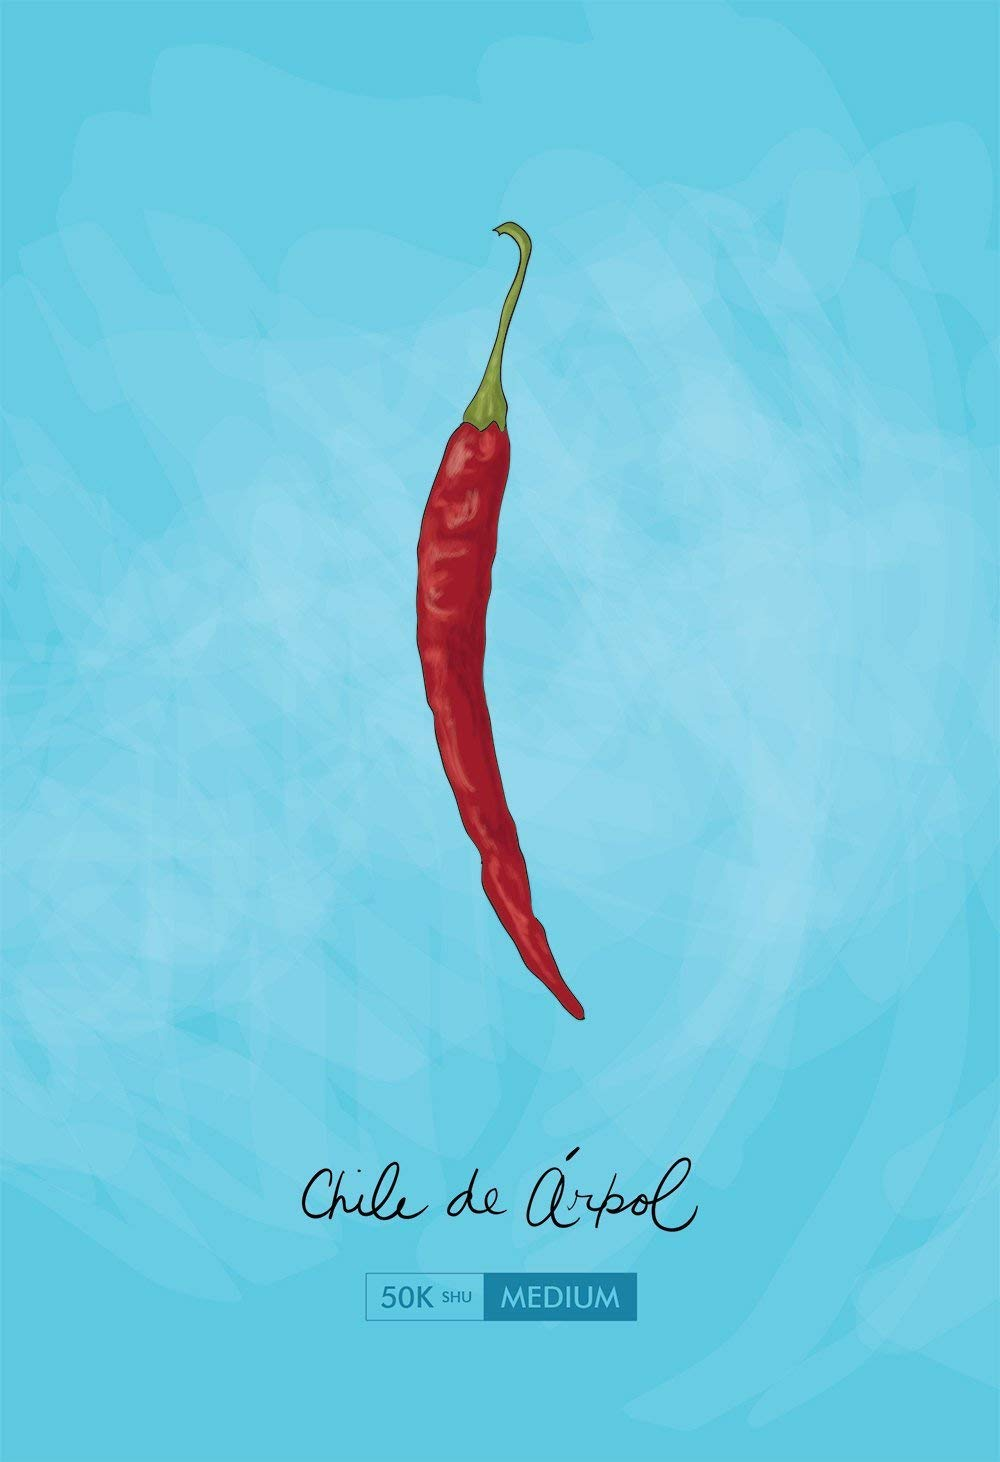 Chile de Arbol Kitchen Art Chili Pepper Print Mexican Rustic Giclee on Cotton Canvas and Paper Canvas Wall Decor